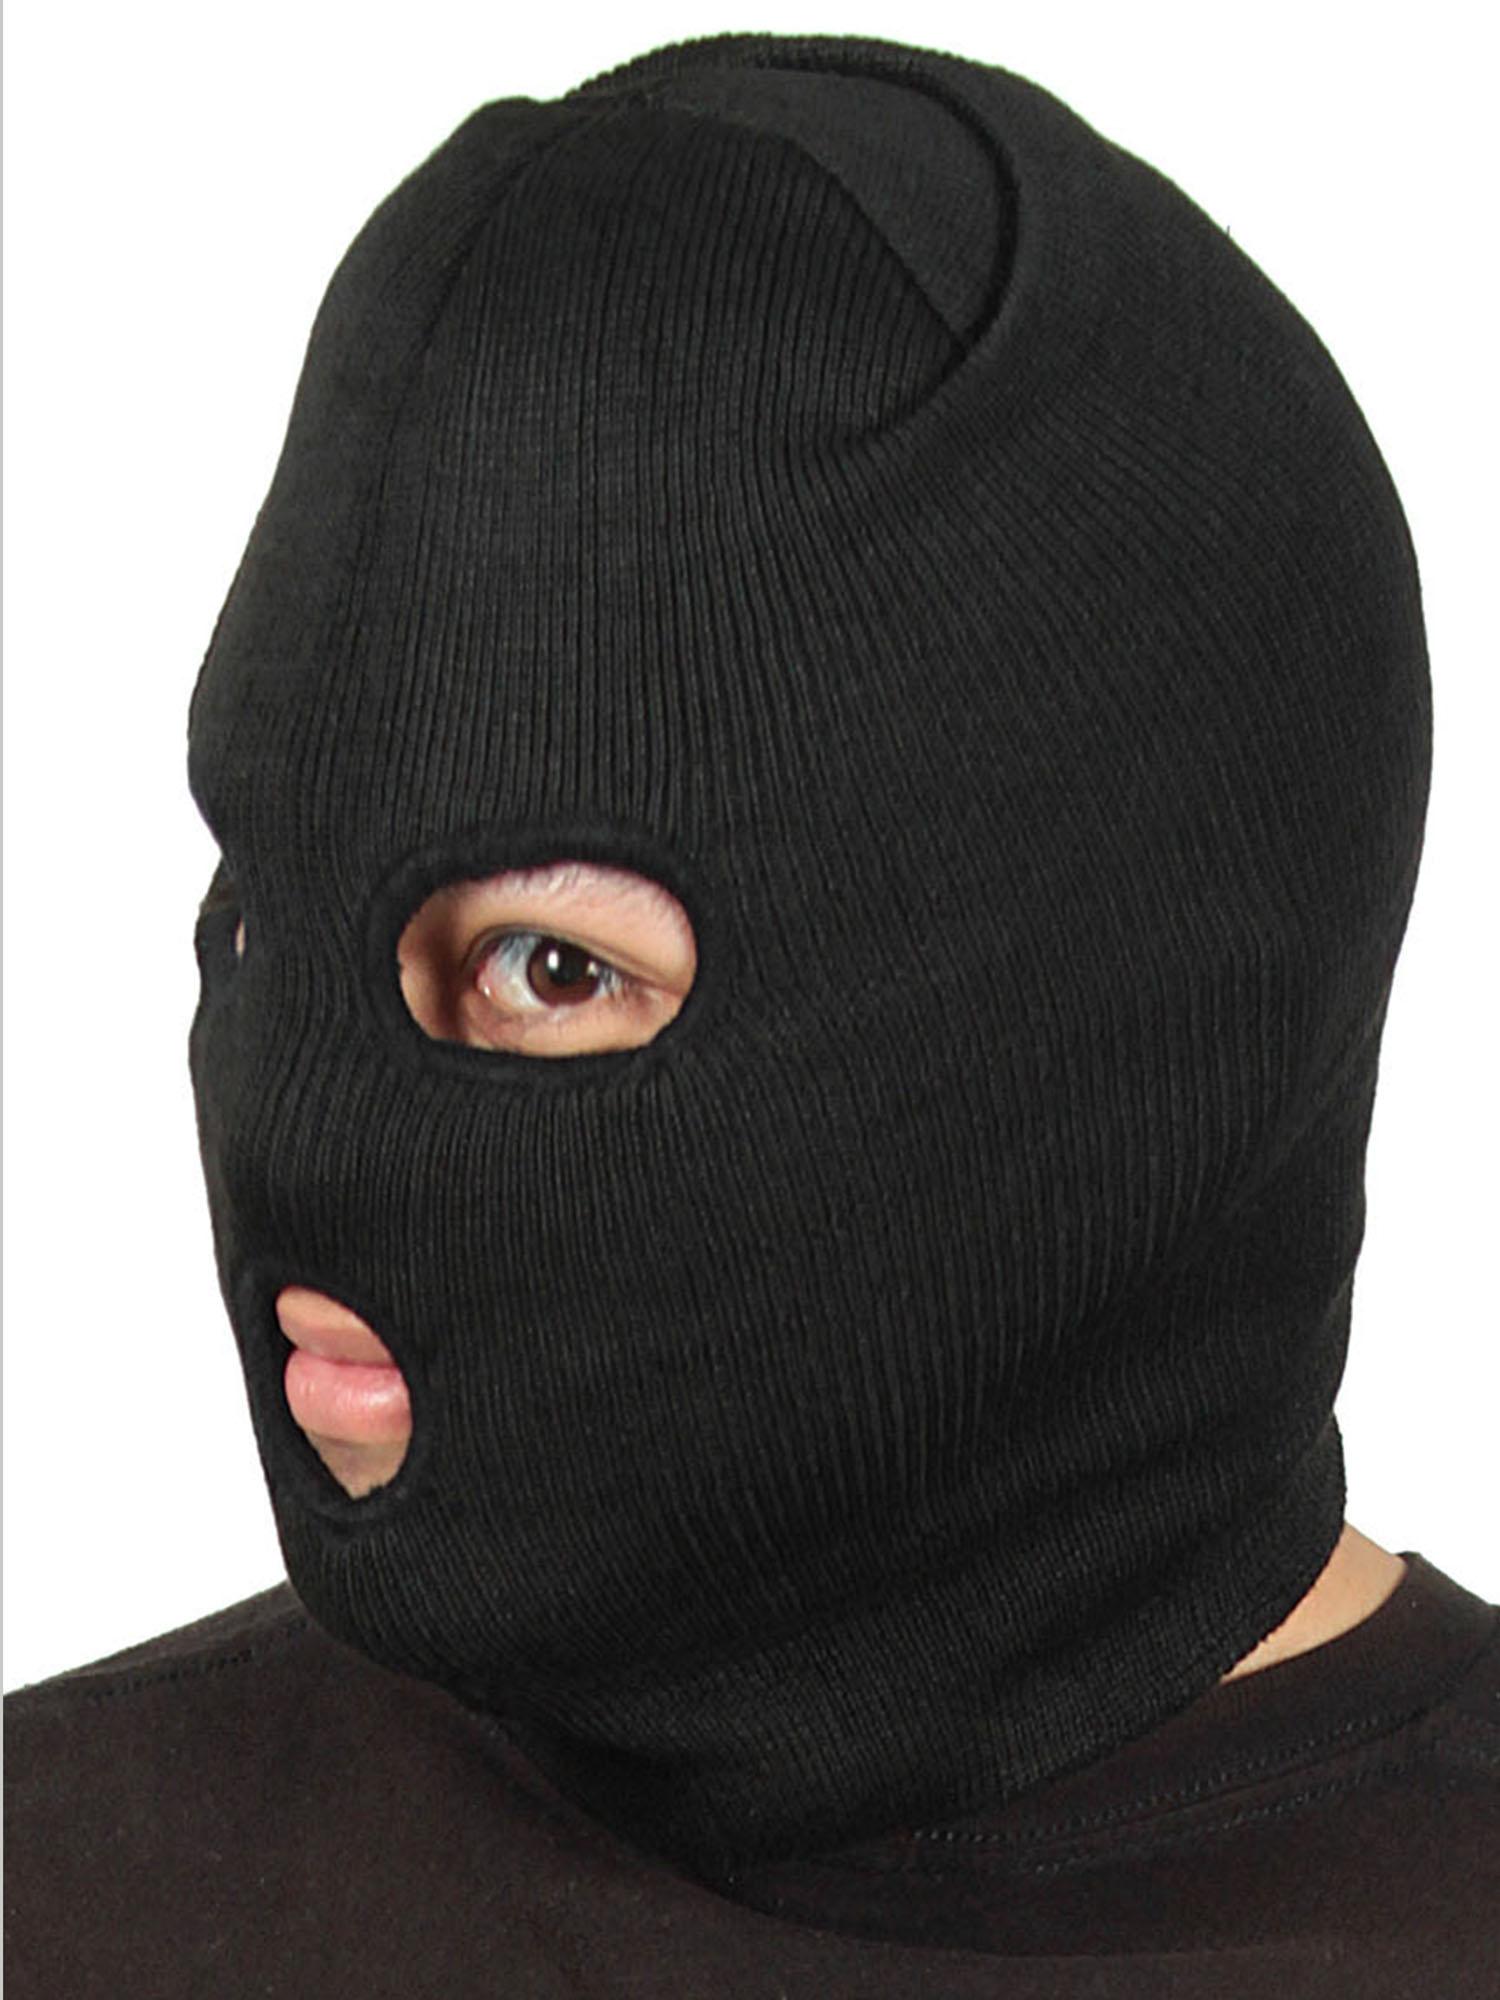 caa19e000571 Knit Face Ski Snowboard Mask 3 Hole Winter Beanie Neck Warmer Balaclavas -  Walmart.com